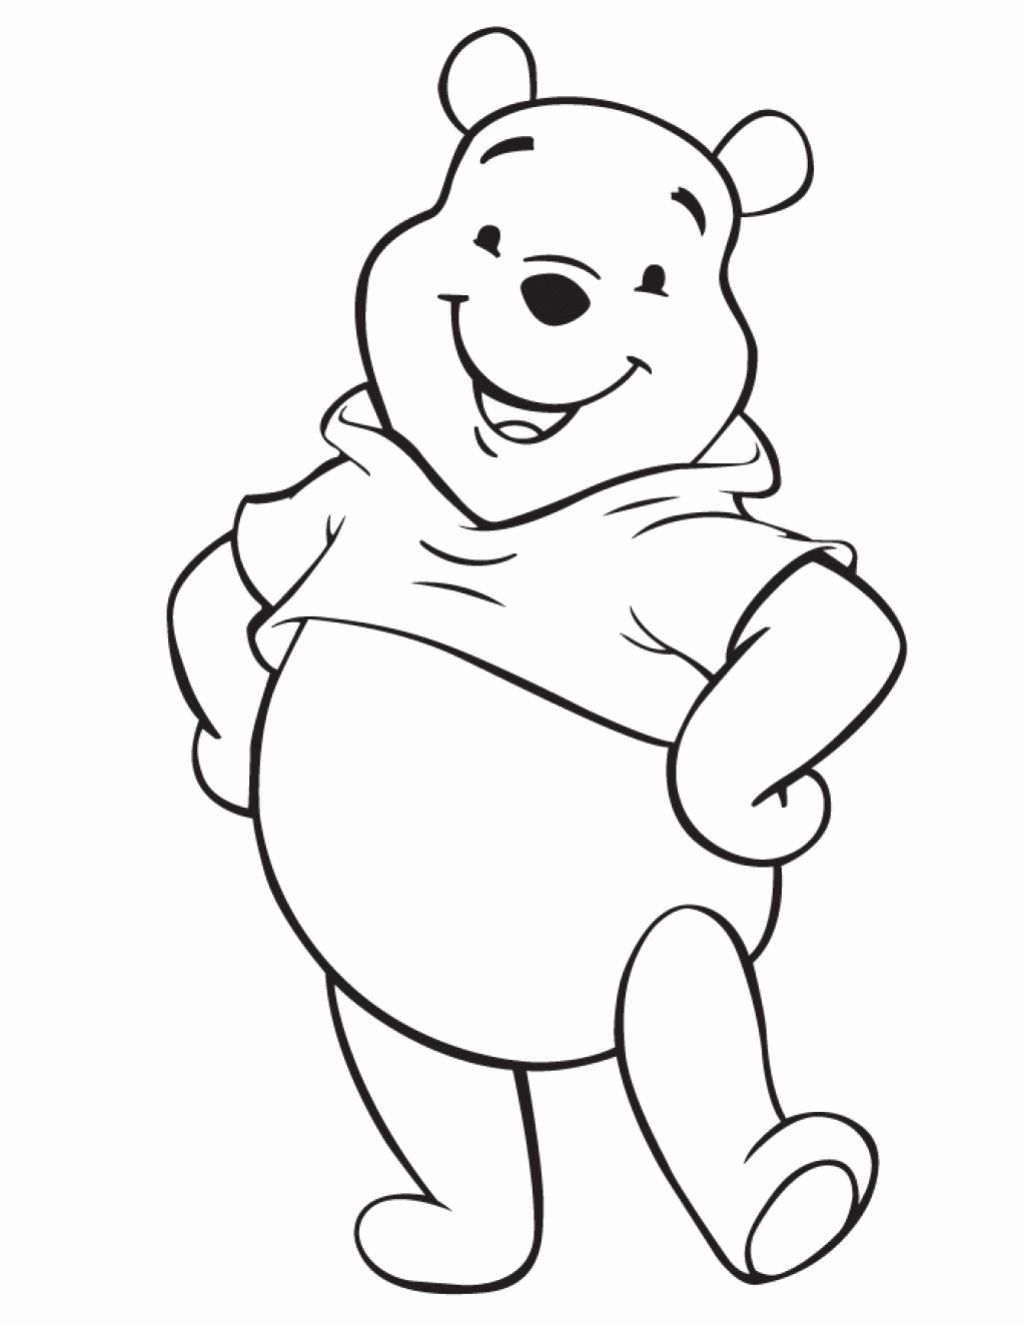 Cartoon Character Coloring Pages Lovely Cute Cartoon Characters Coloring Pages Coloring Ho Disney Character Drawings Bear Coloring Pages Baby Disney Characters